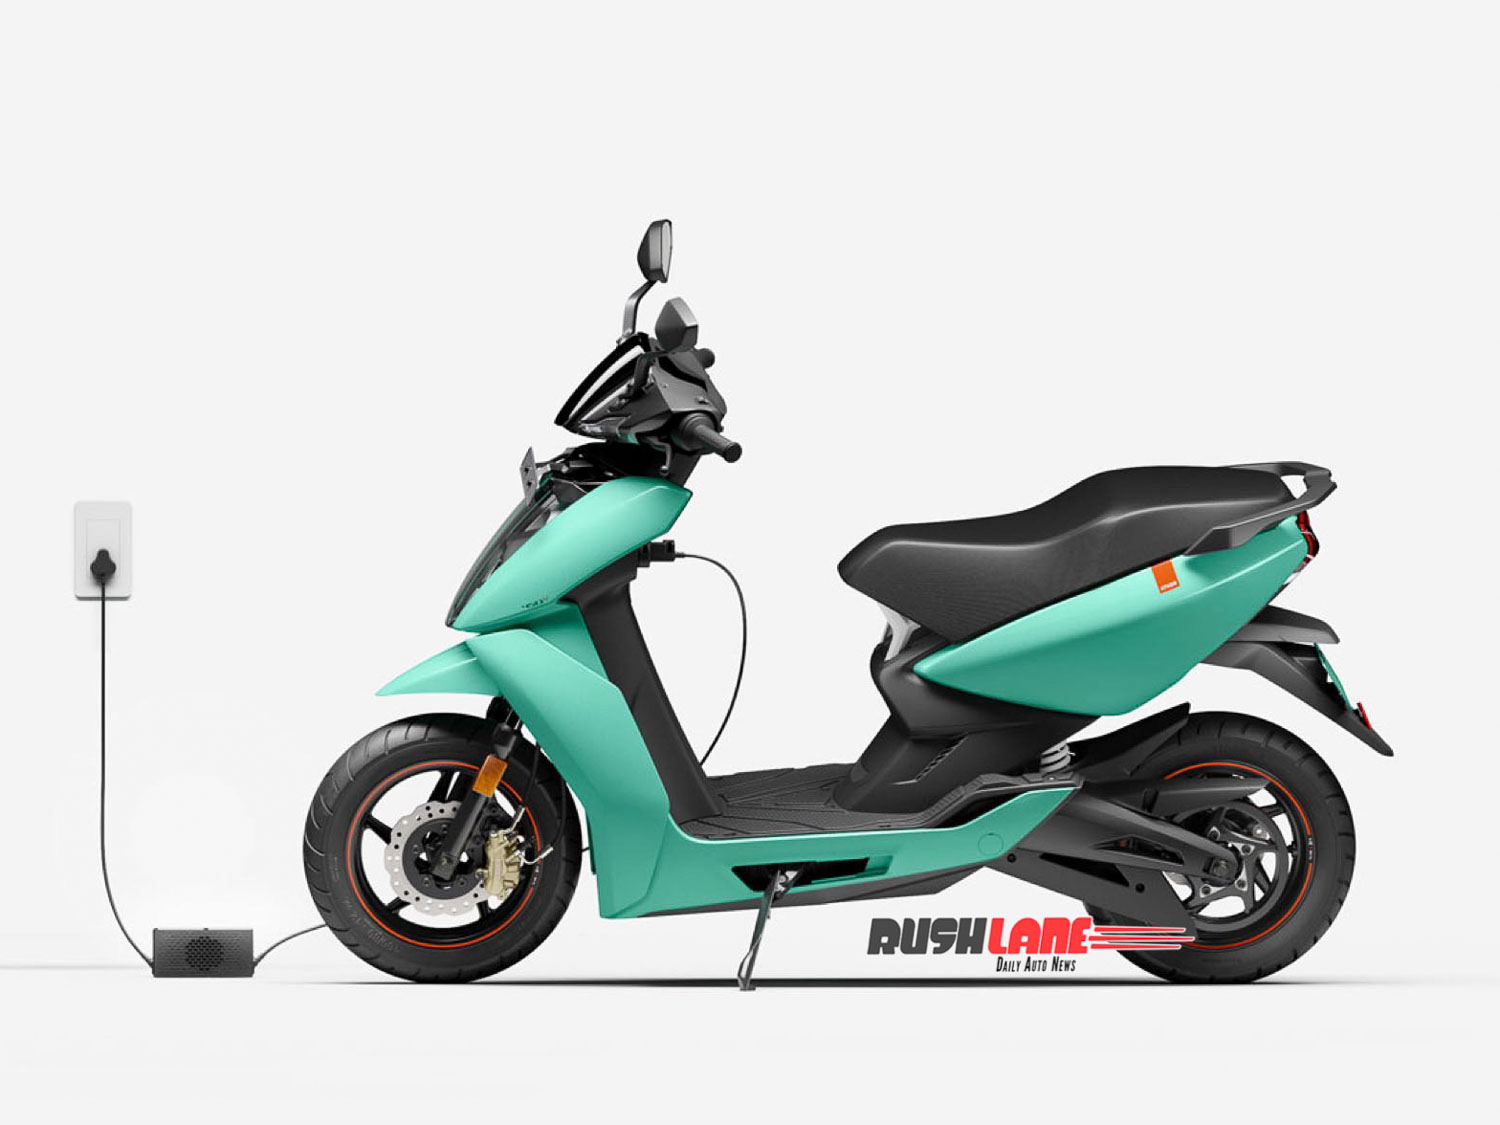 Ather electric scooter to get tyre pressure monitoring system